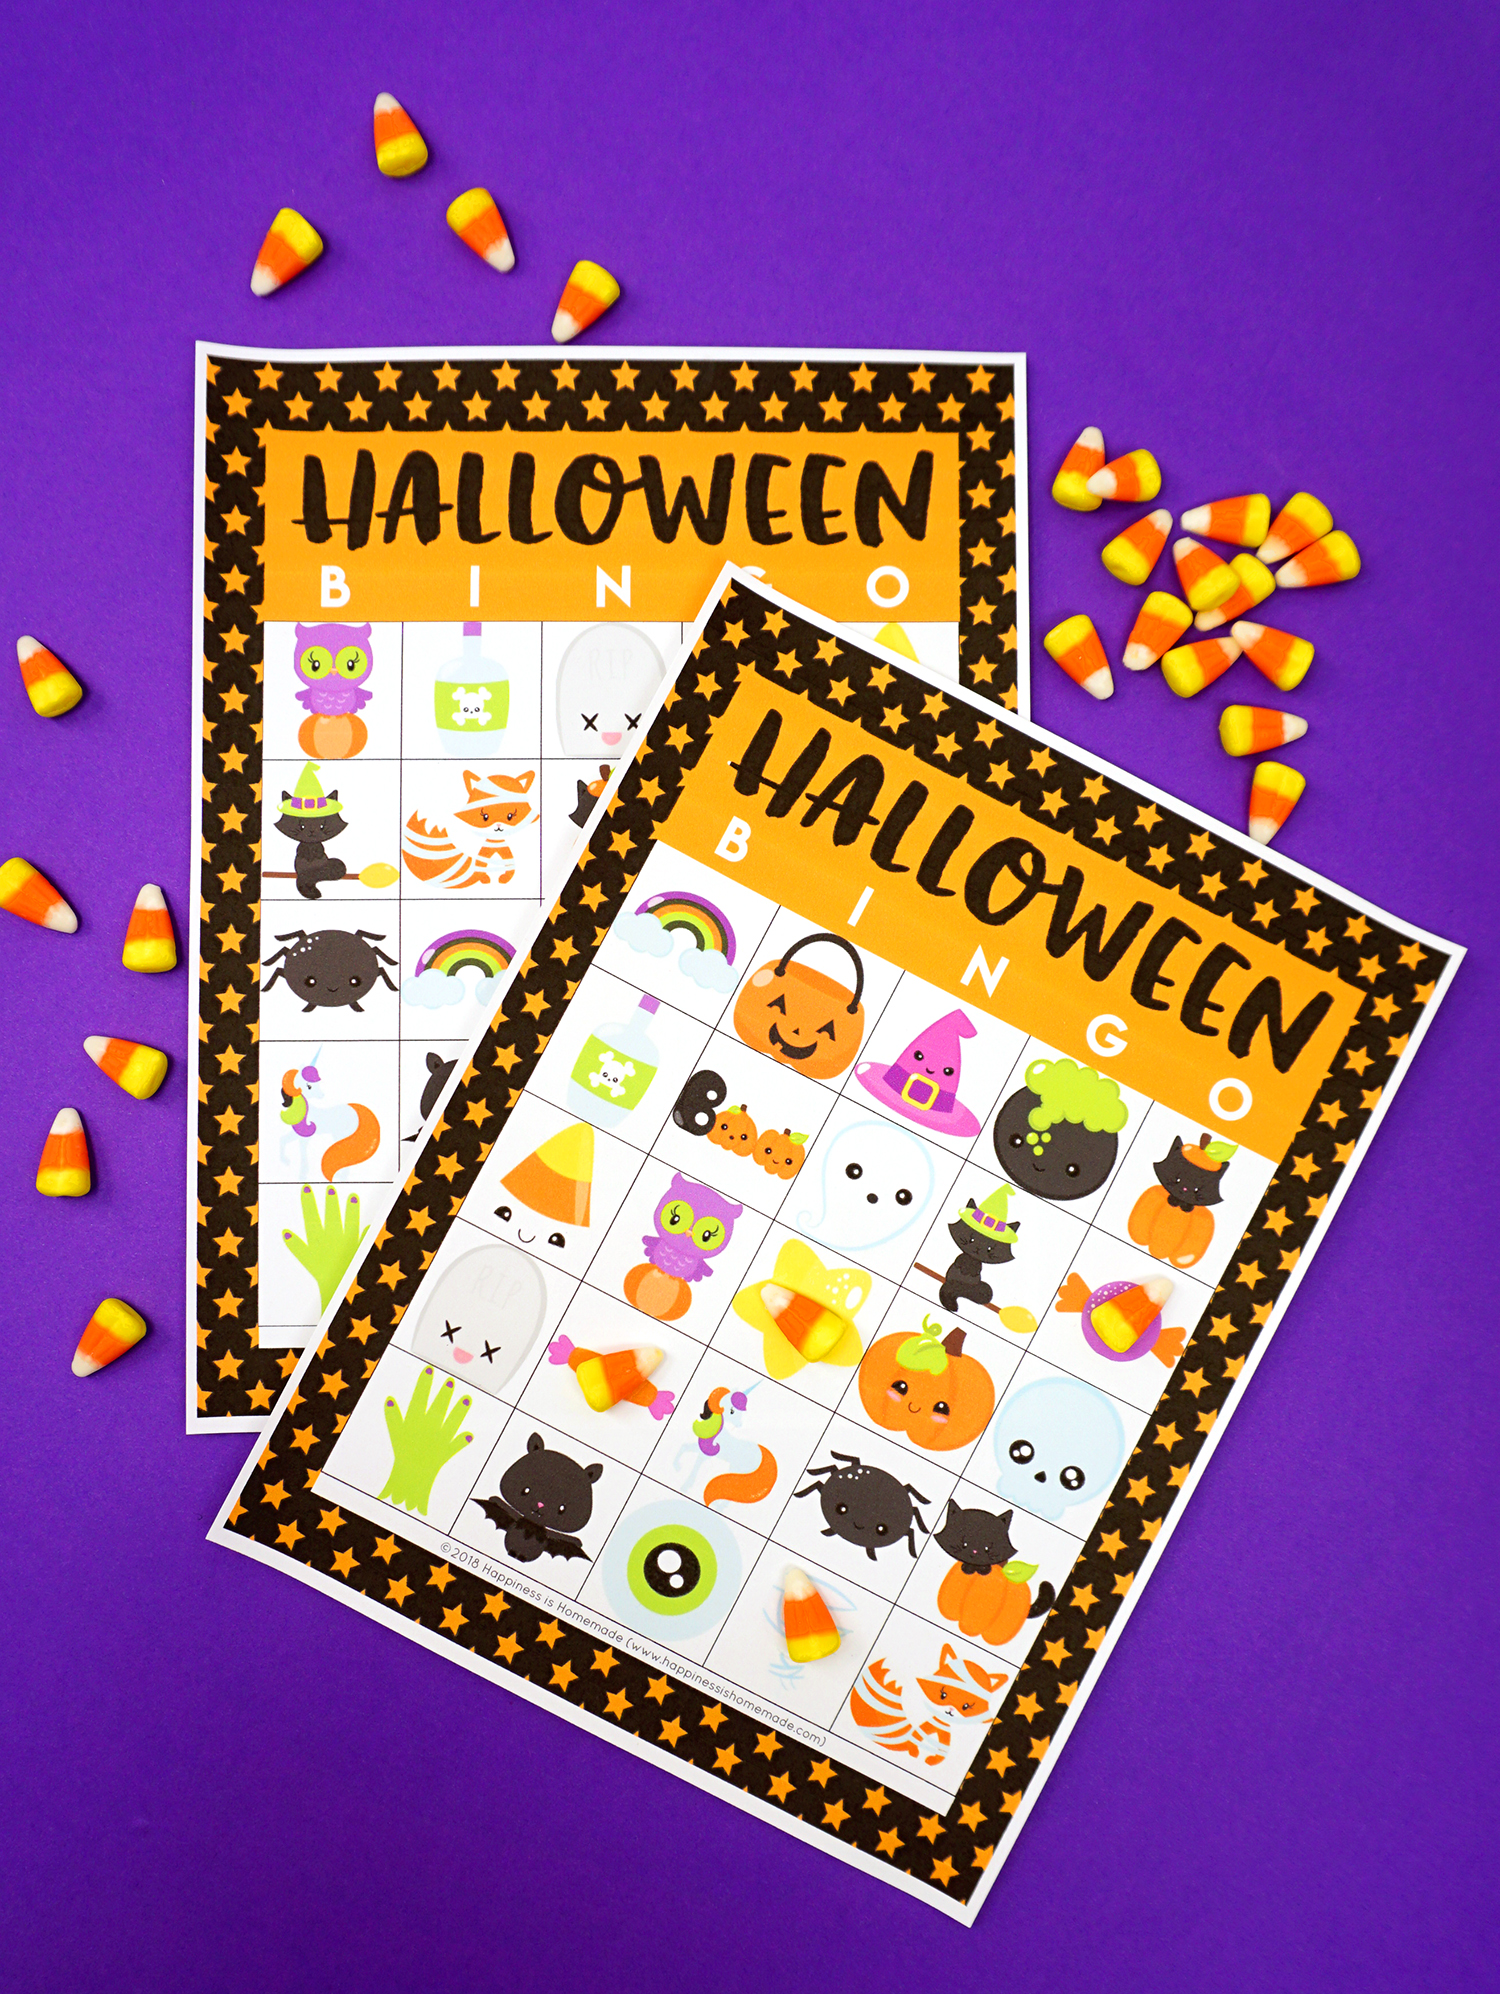 photo about 25 Printable Halloween Bingo Cards referred to as Printable Halloween Bingo Playing cards - Pleasure is Selfmade